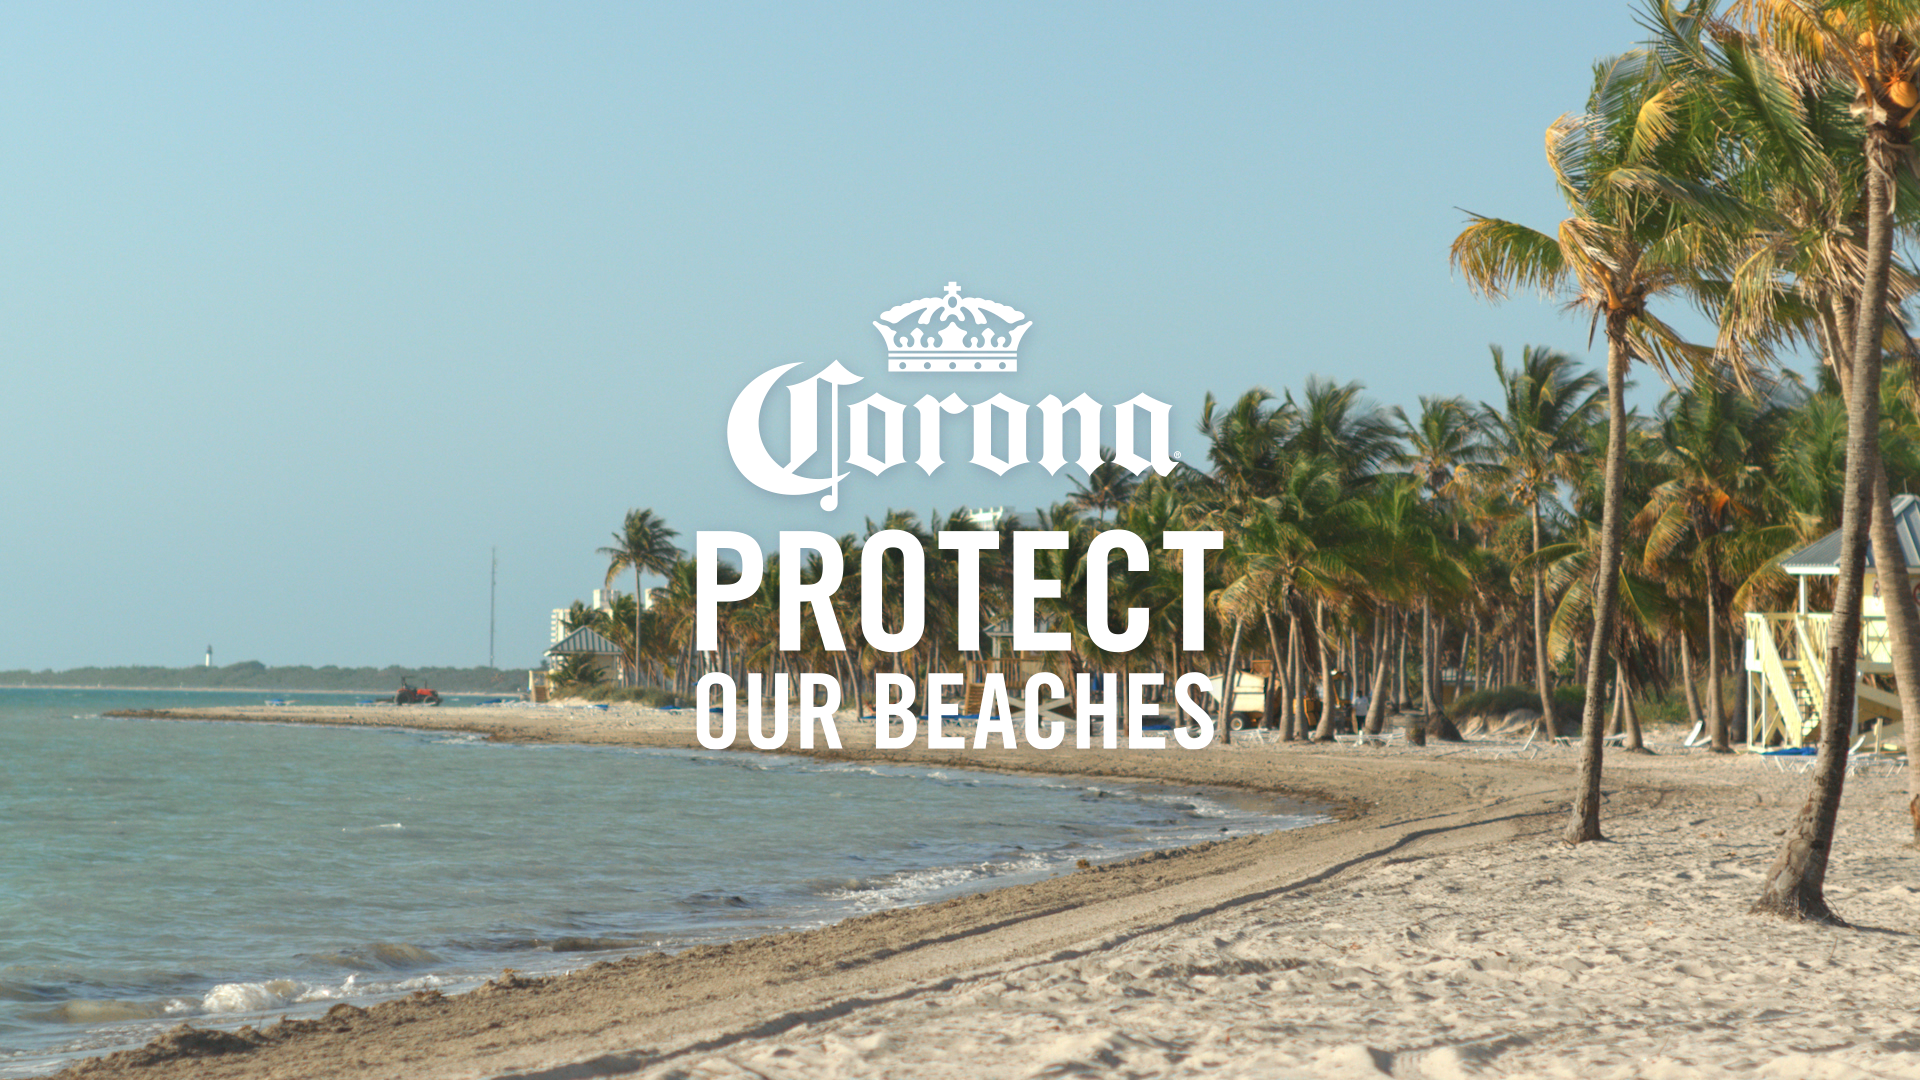 A picture of the beach with the caption Corona: Protect Our Beaches